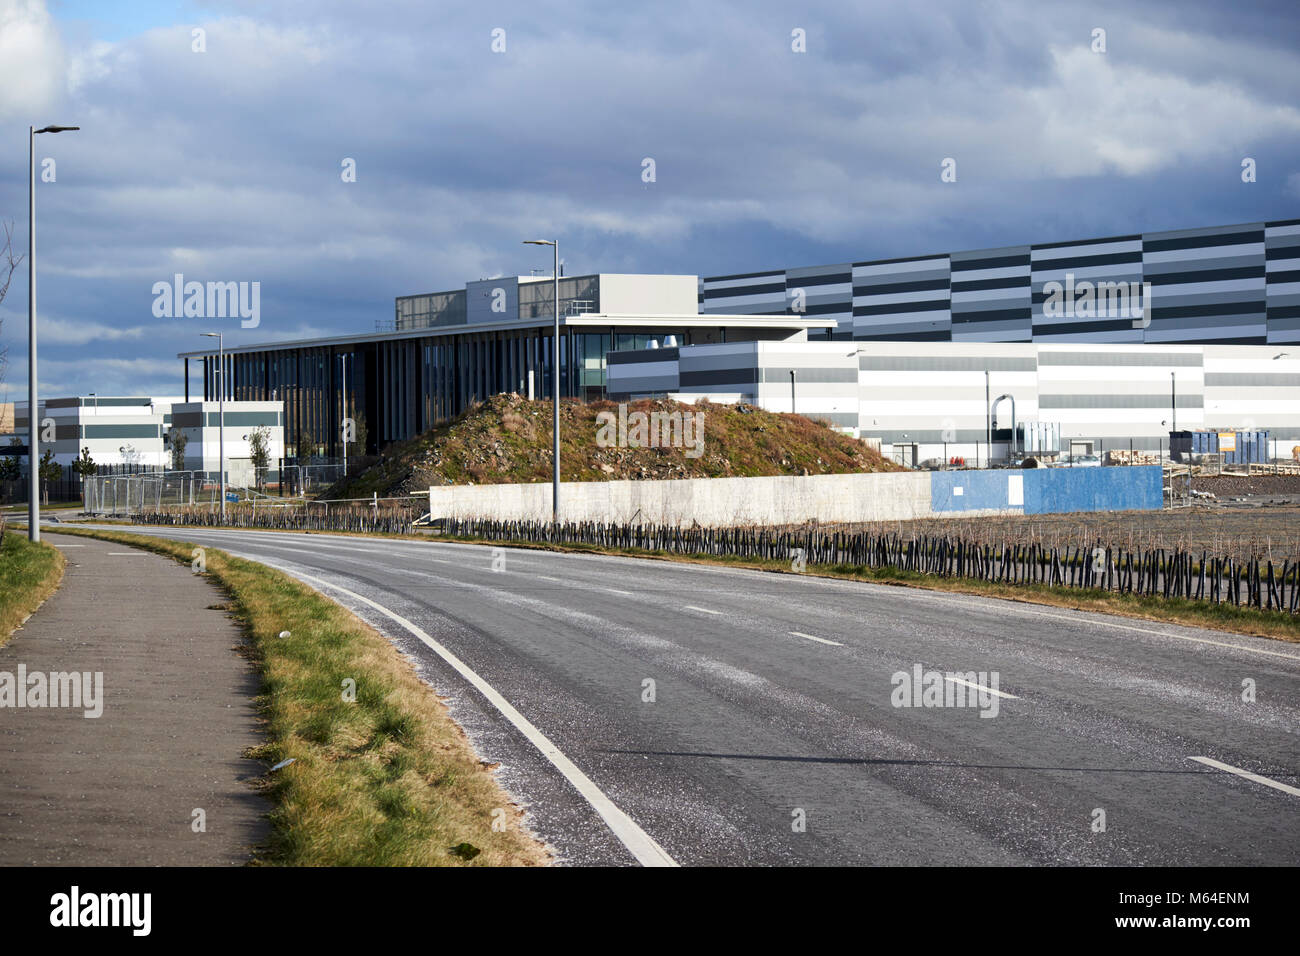 belfast harbour studios film and television studio giants park site on former landfill on reclaimed land north foreshore - Stock Image